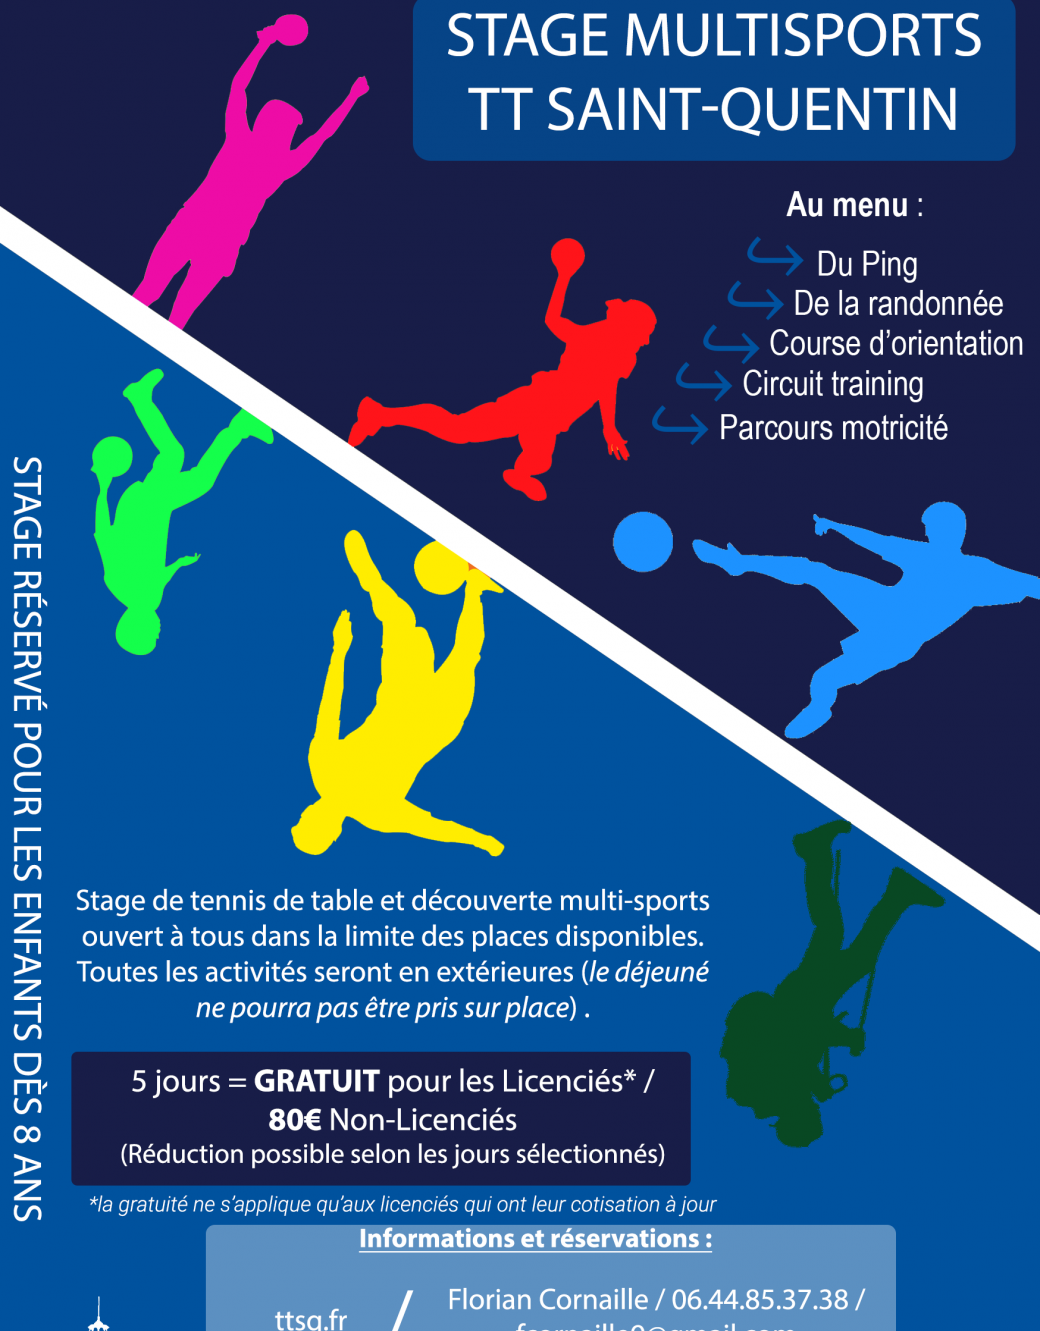 Stage Multisports vacances d'avril